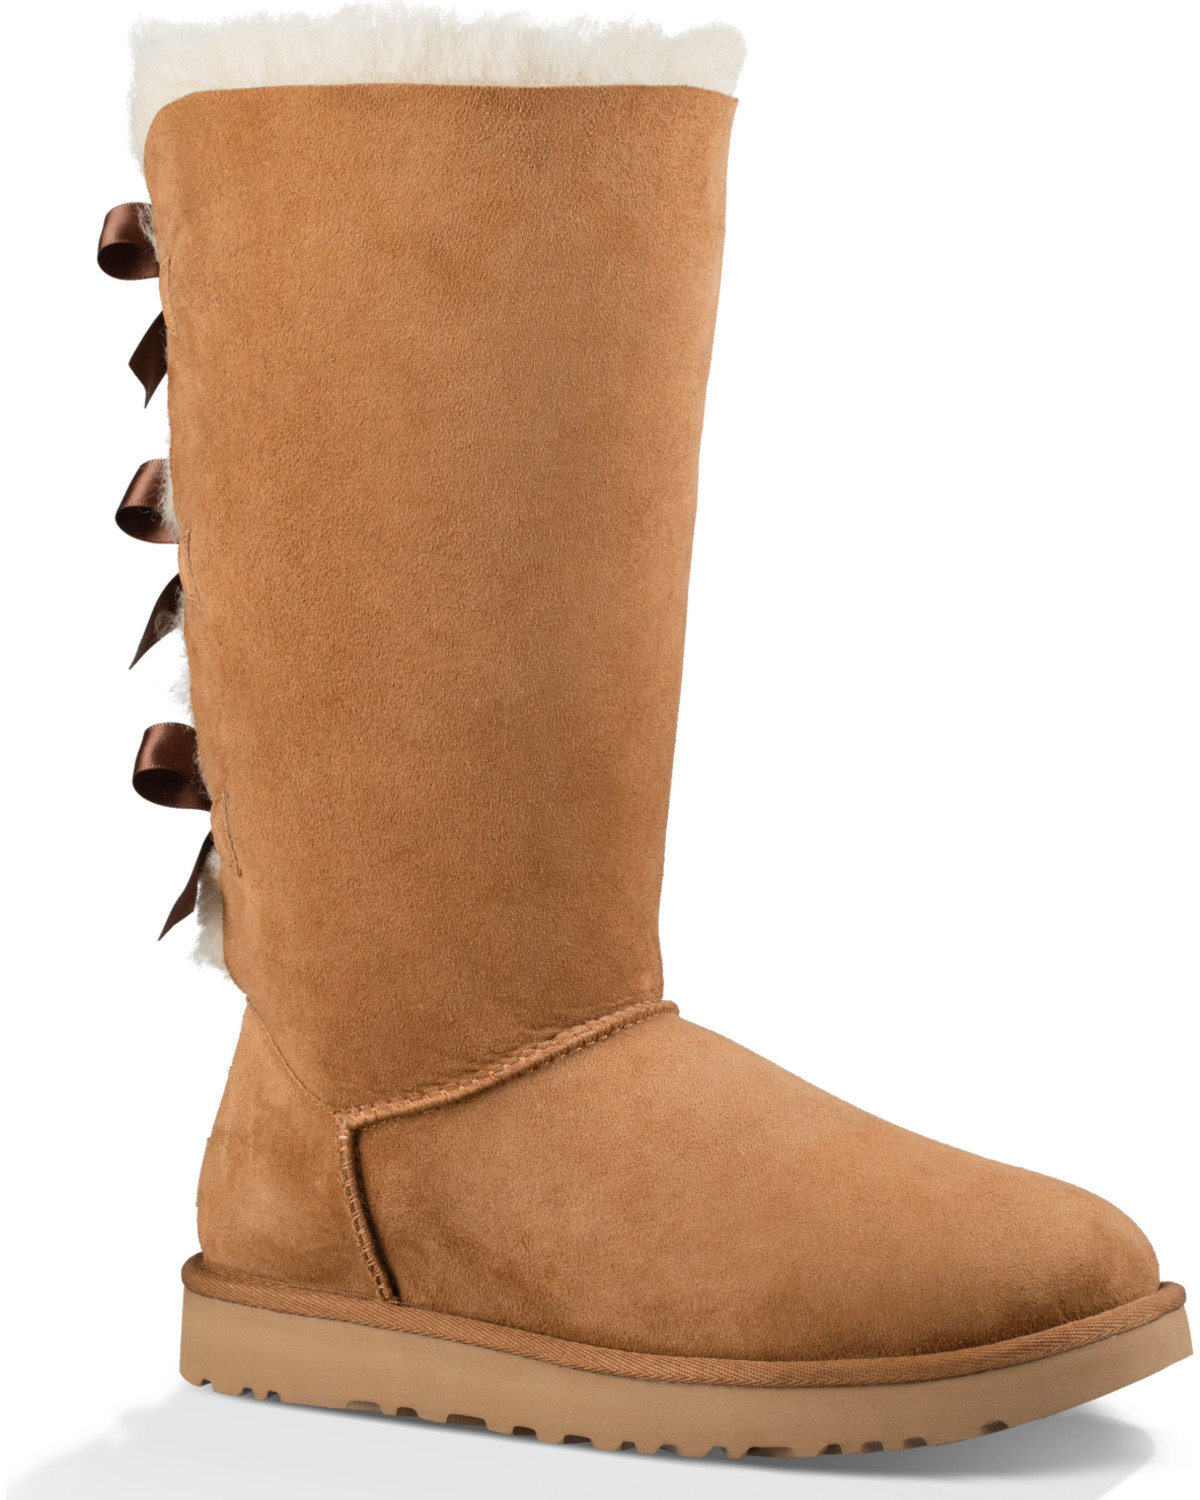 159f1a9abe5 UGG Women's Chestnut Bailey Bow Tall II Boots - Round Toe